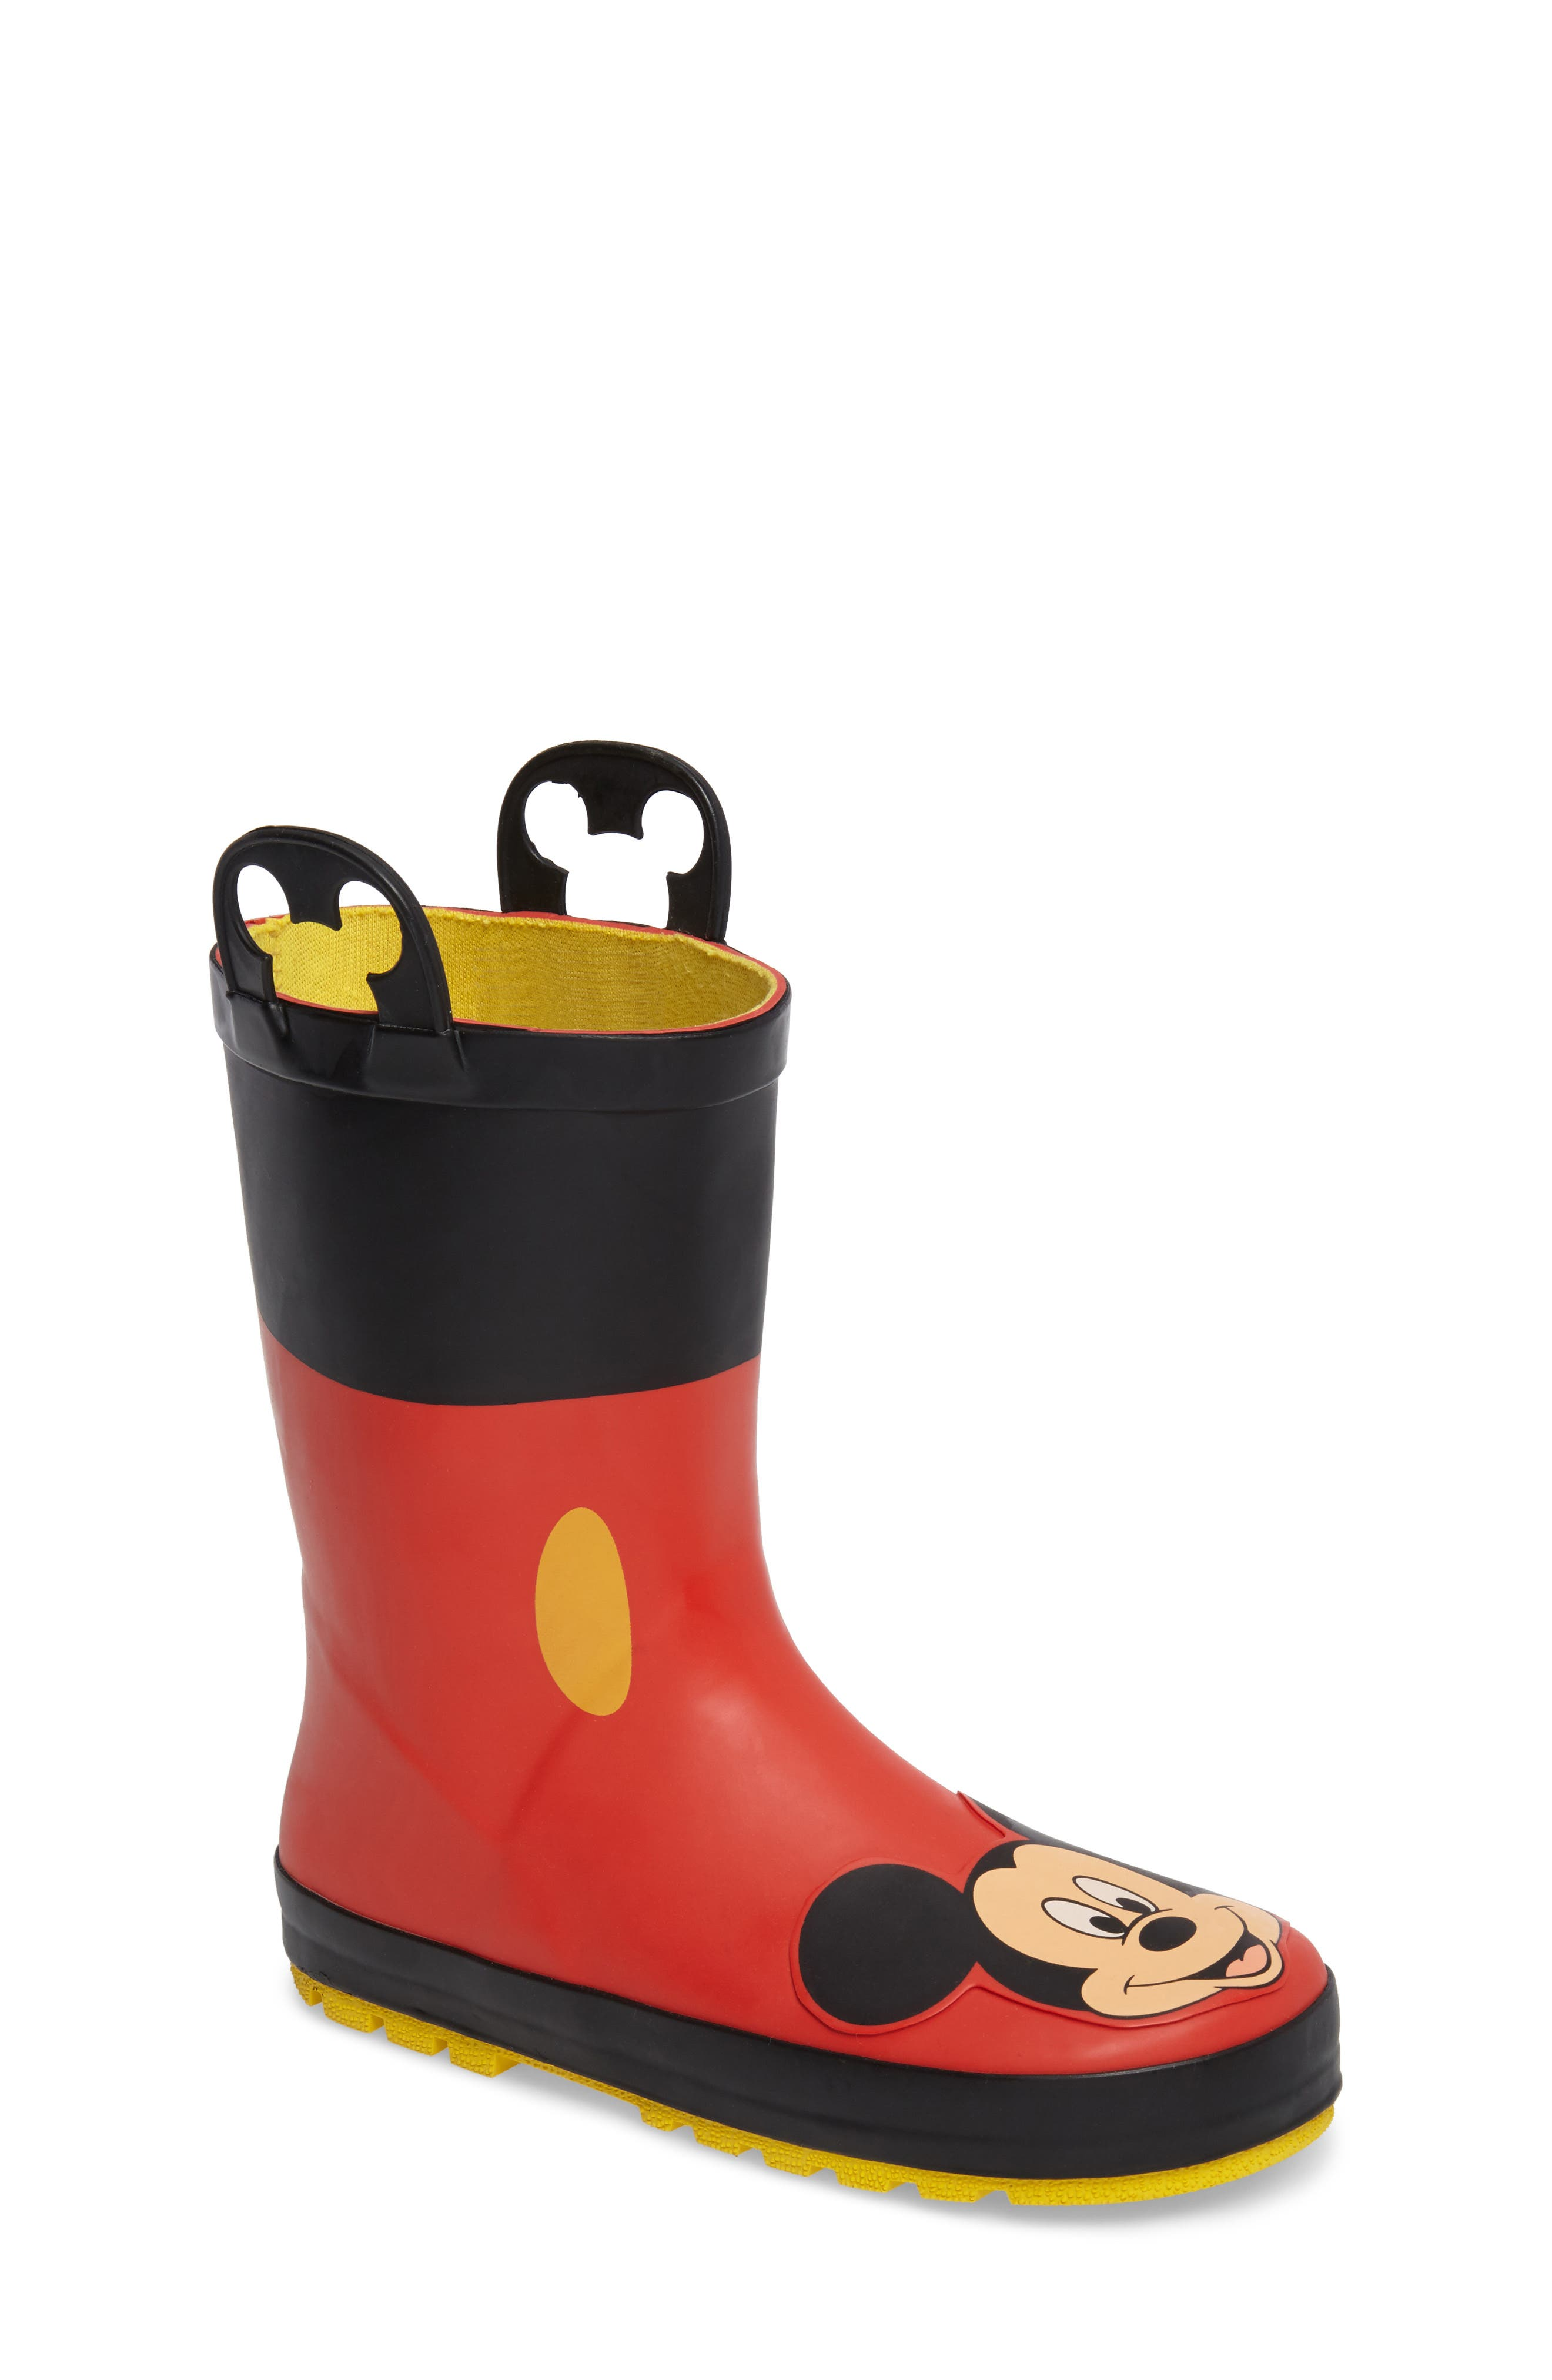 Alternate Image 1 Selected - Western Chief Mickey Mouse Rain Boot (Walker, Toddler, Little Kid & Big Kid)